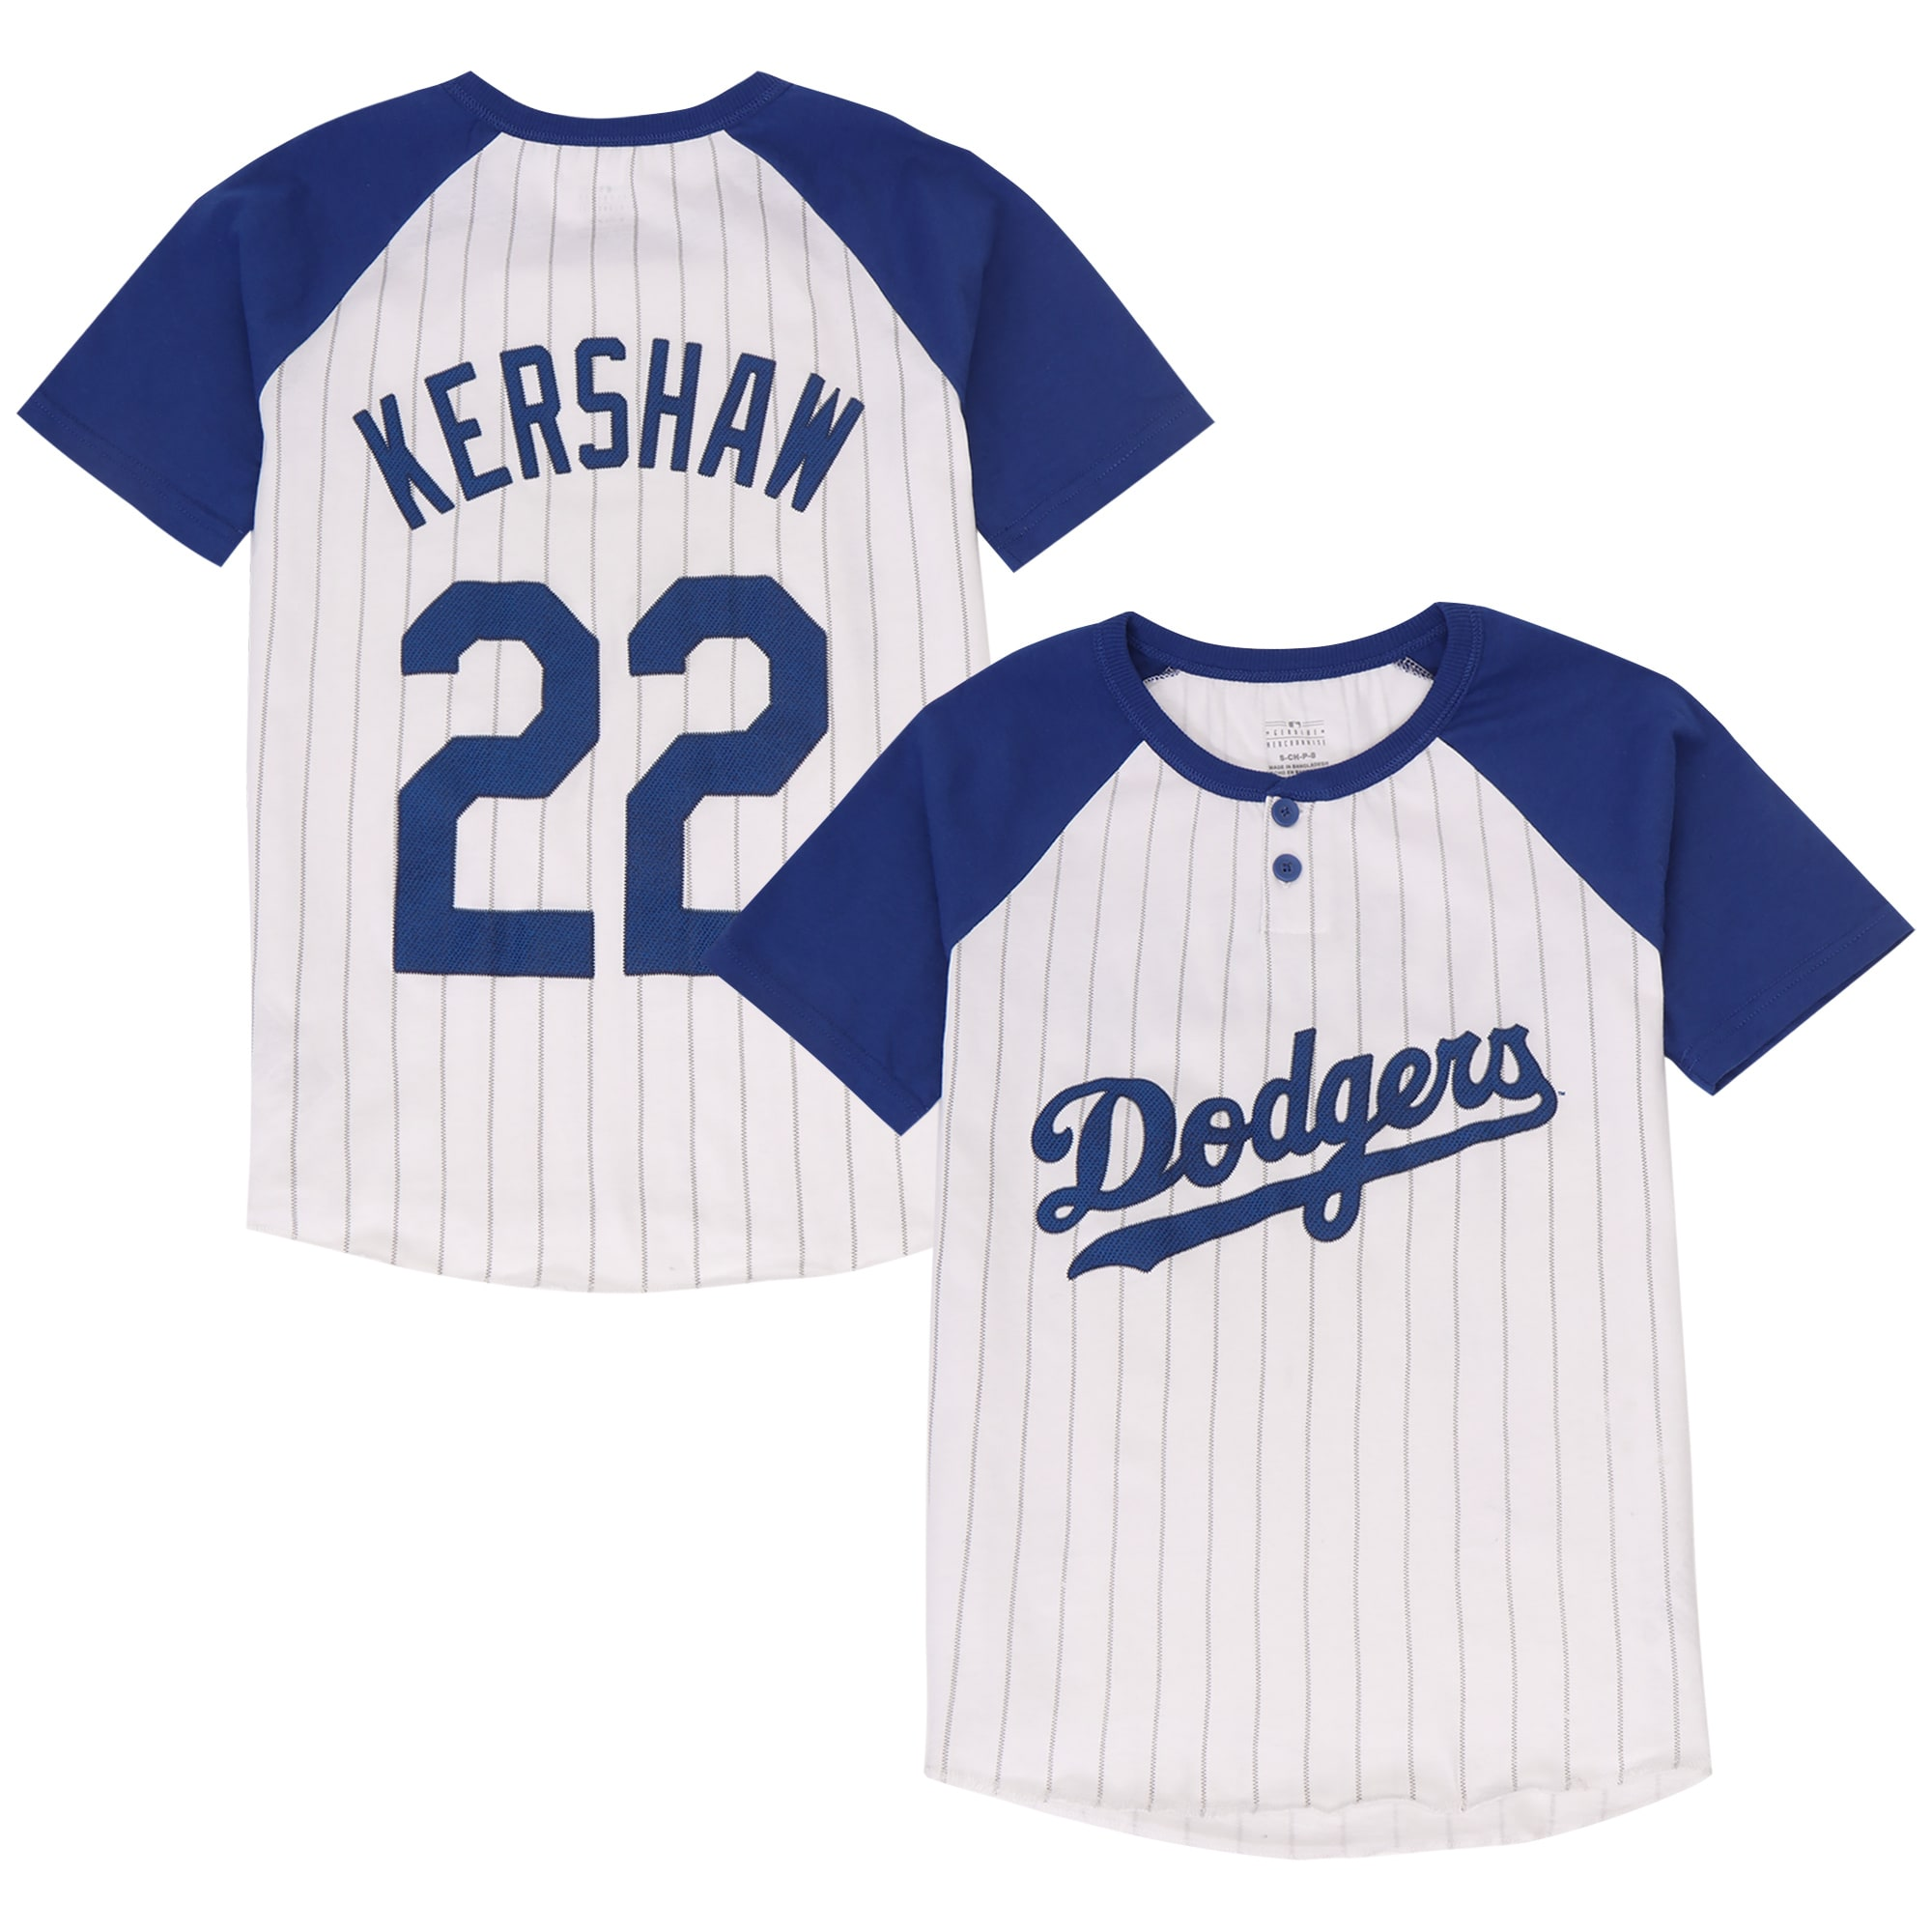 Clayton Kershaw Los Angeles Dodgers Majestic Youth Game Day Pinstripe Name & Number Henley T-Shirt - White/Royal